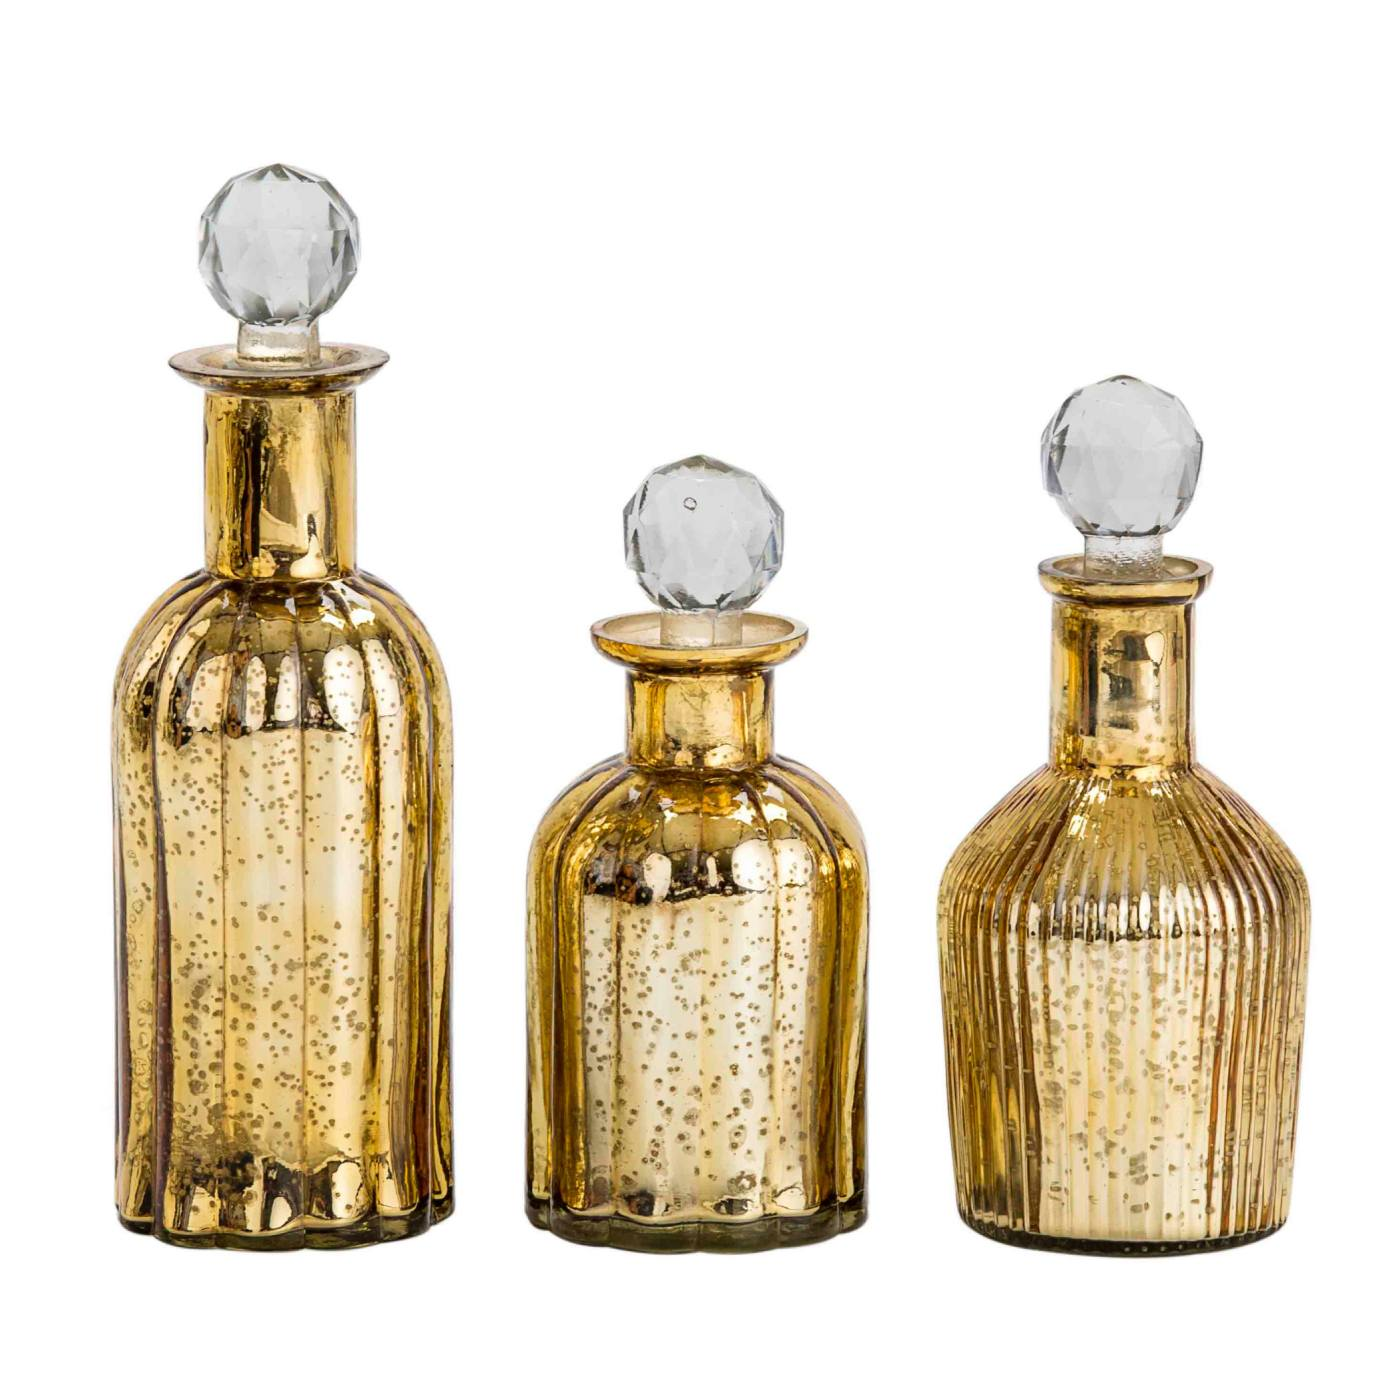 Glass decorative bottles